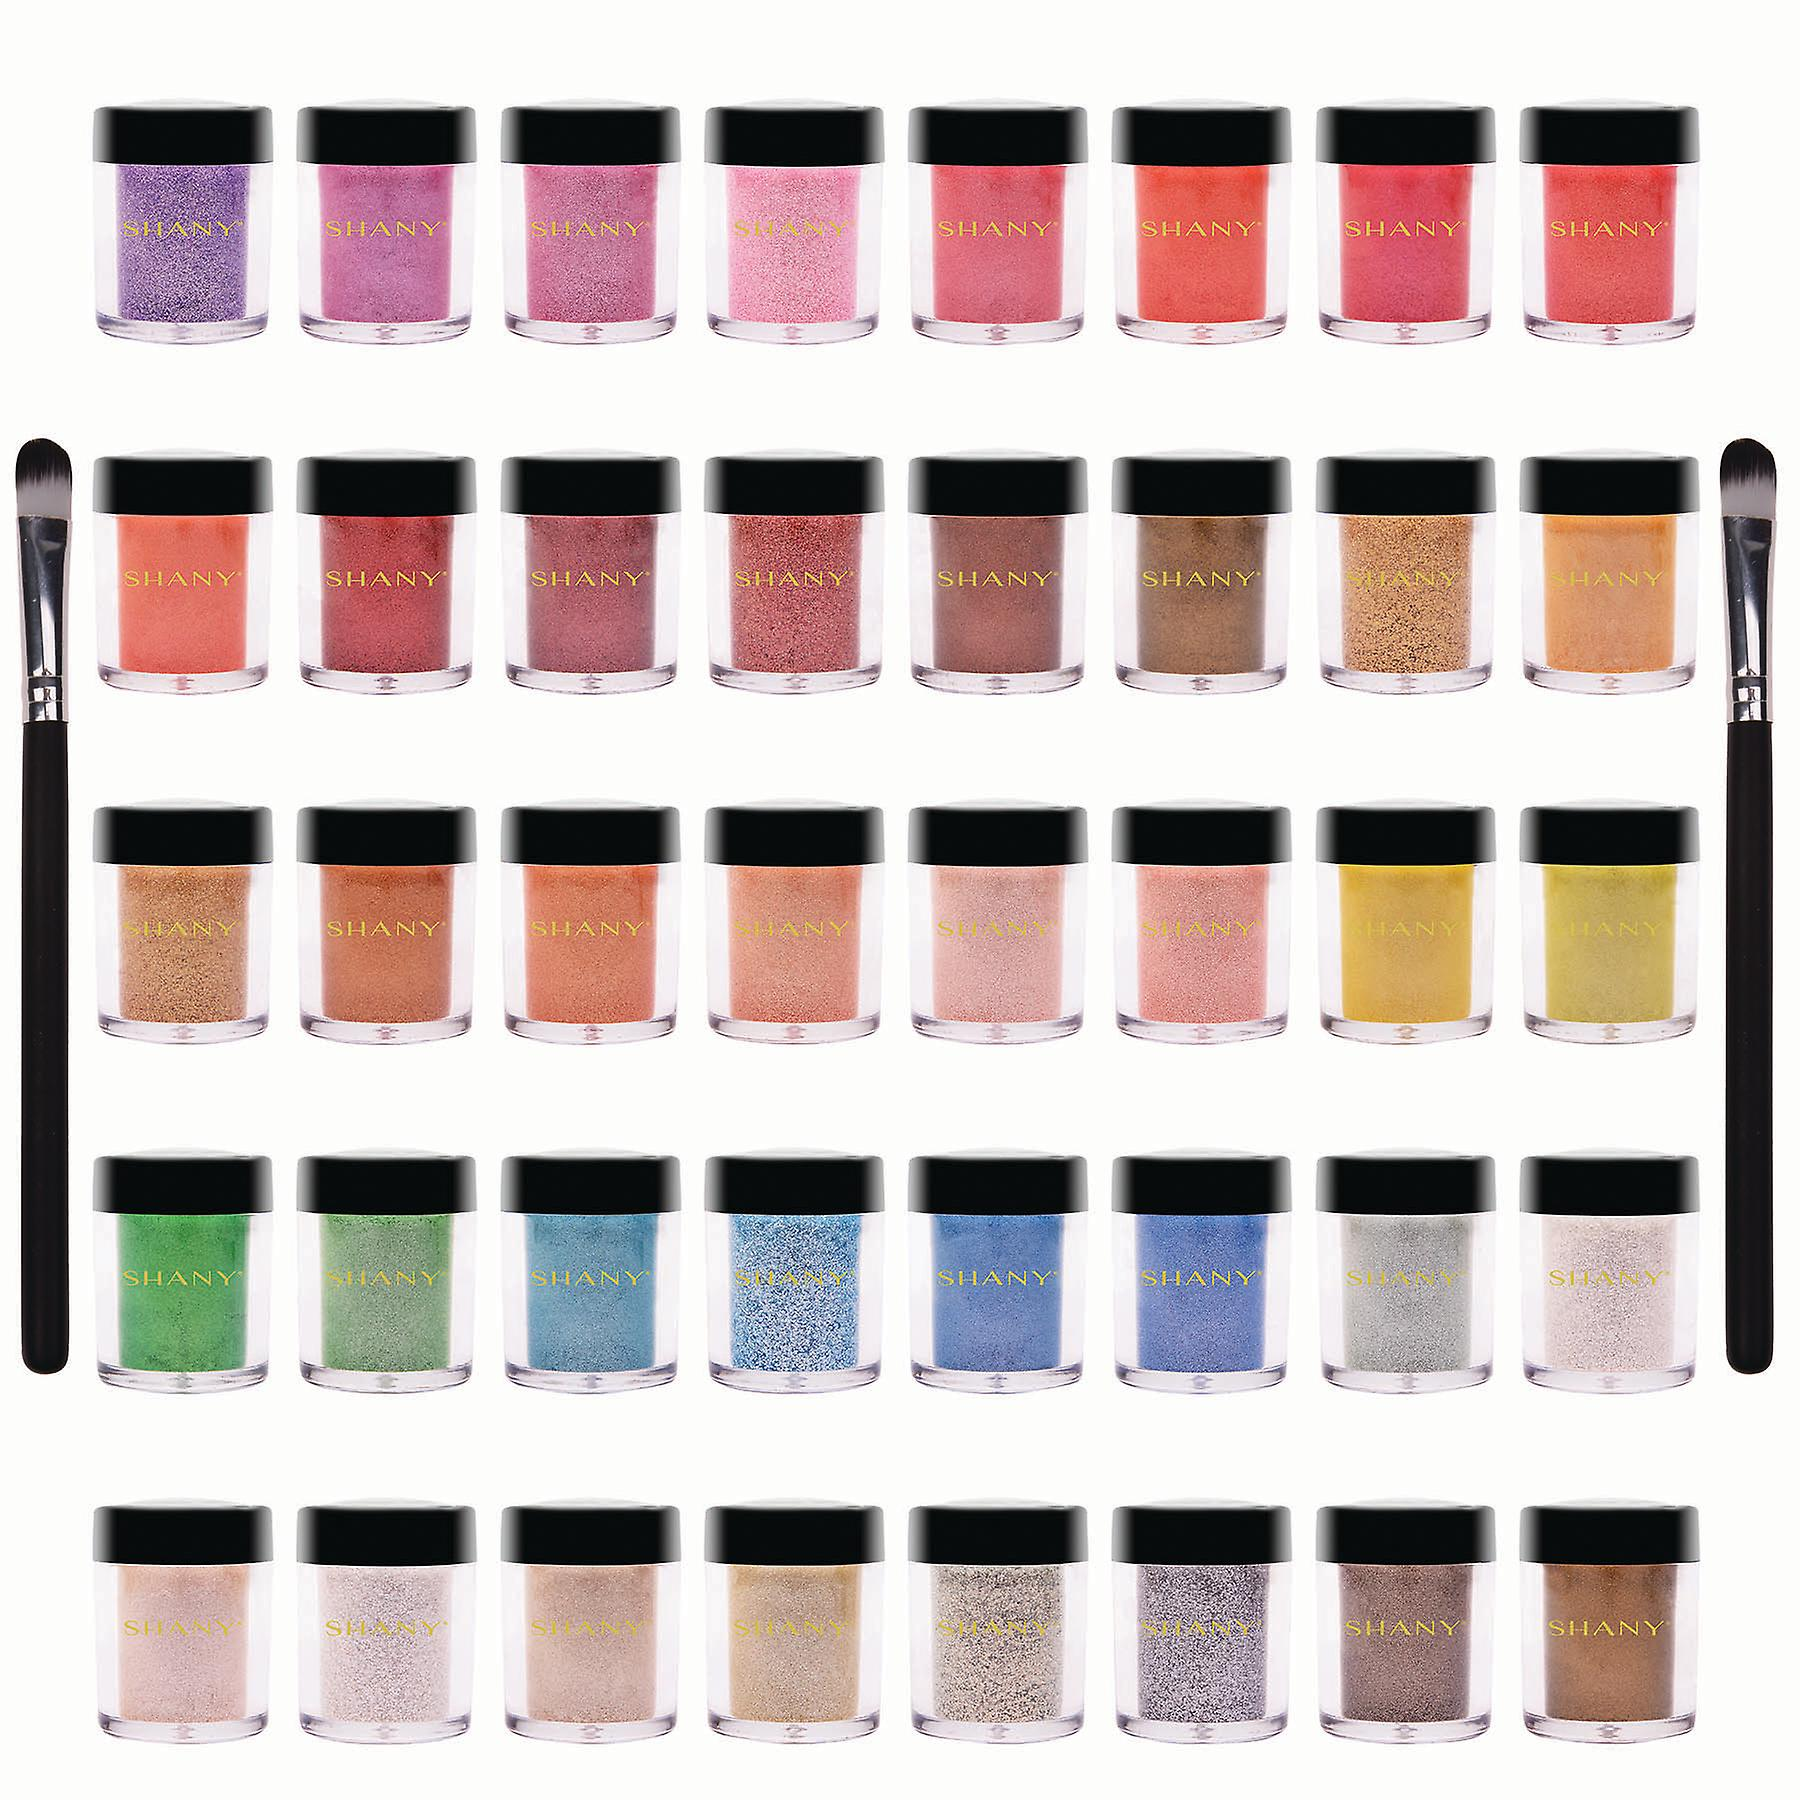 SHANY Loose Pearl Eye Shadow Glitter in Favorite Colors with Two Shadow Brushes - Set of 40 colors